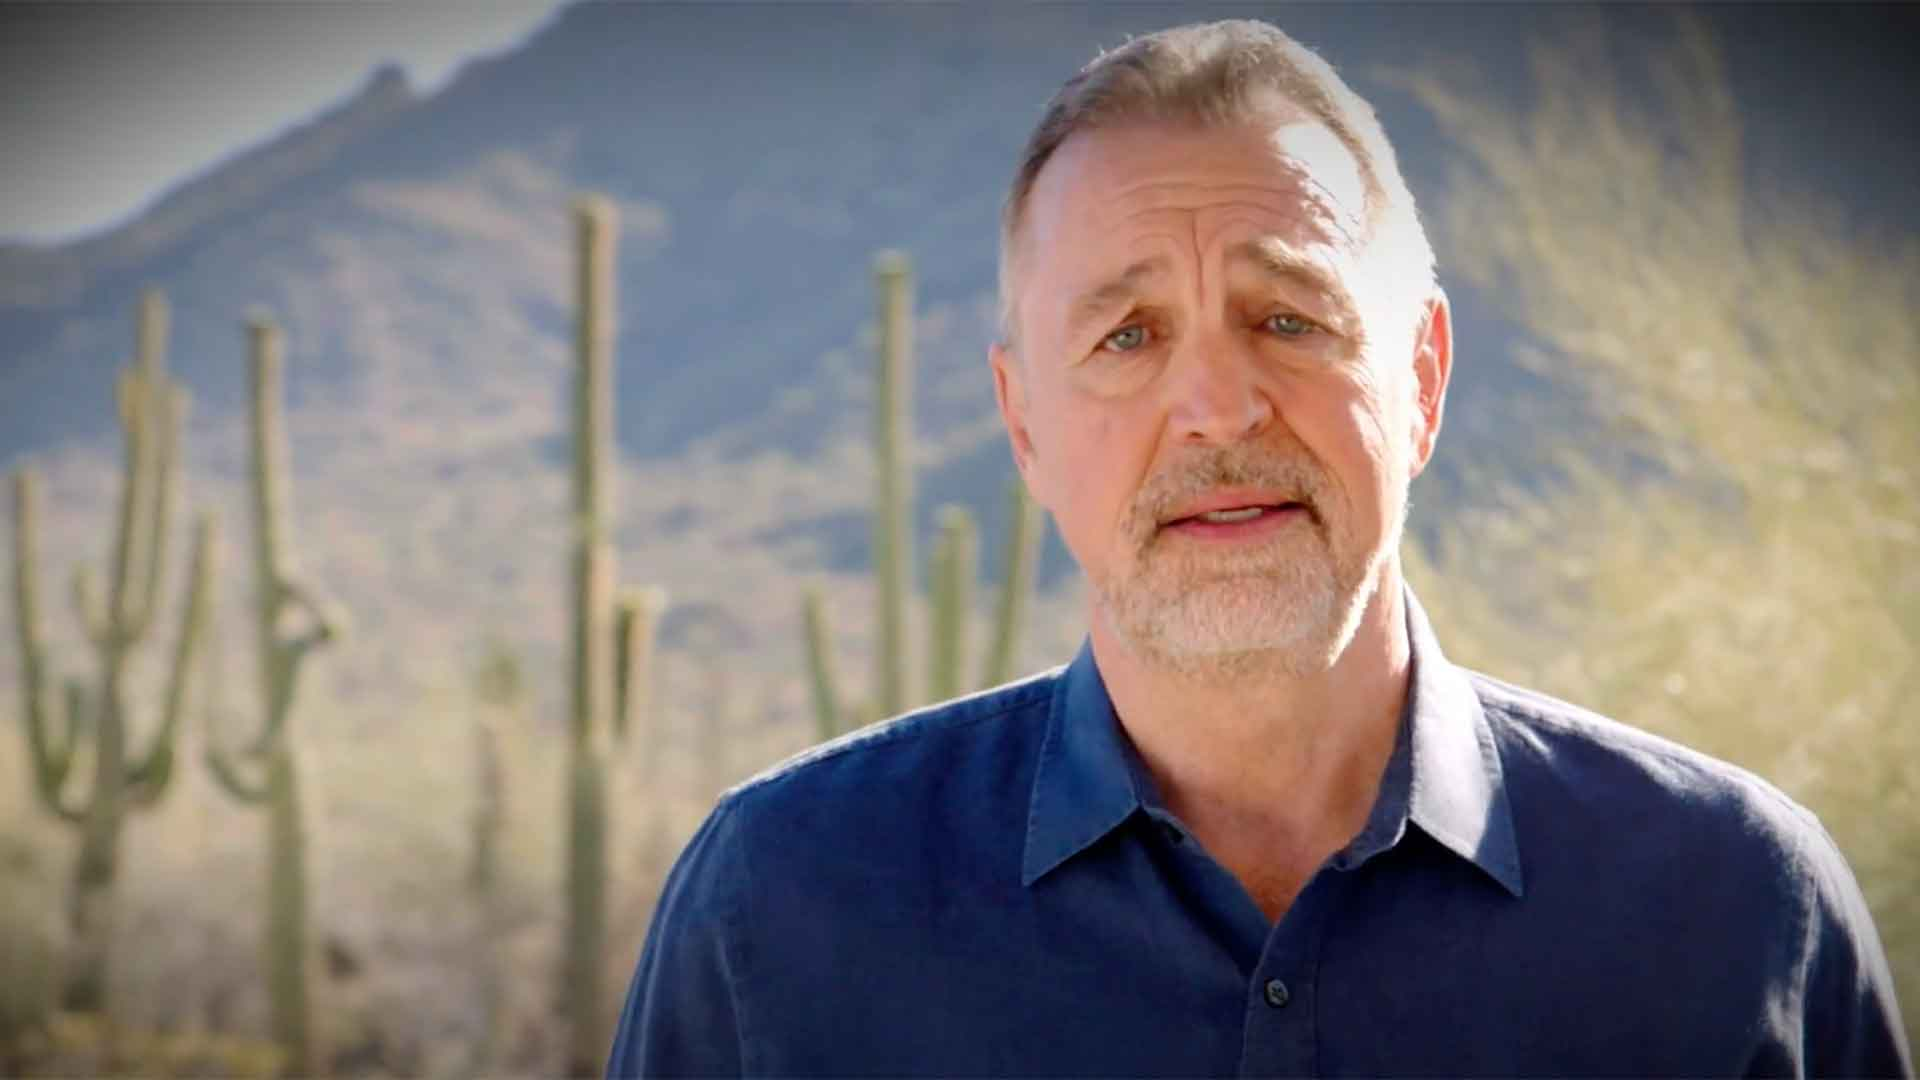 Former Congressman Matt Salmon used a video to announce his entrance in the Republican gubernatorial primary in Arizona. June 16, 2021